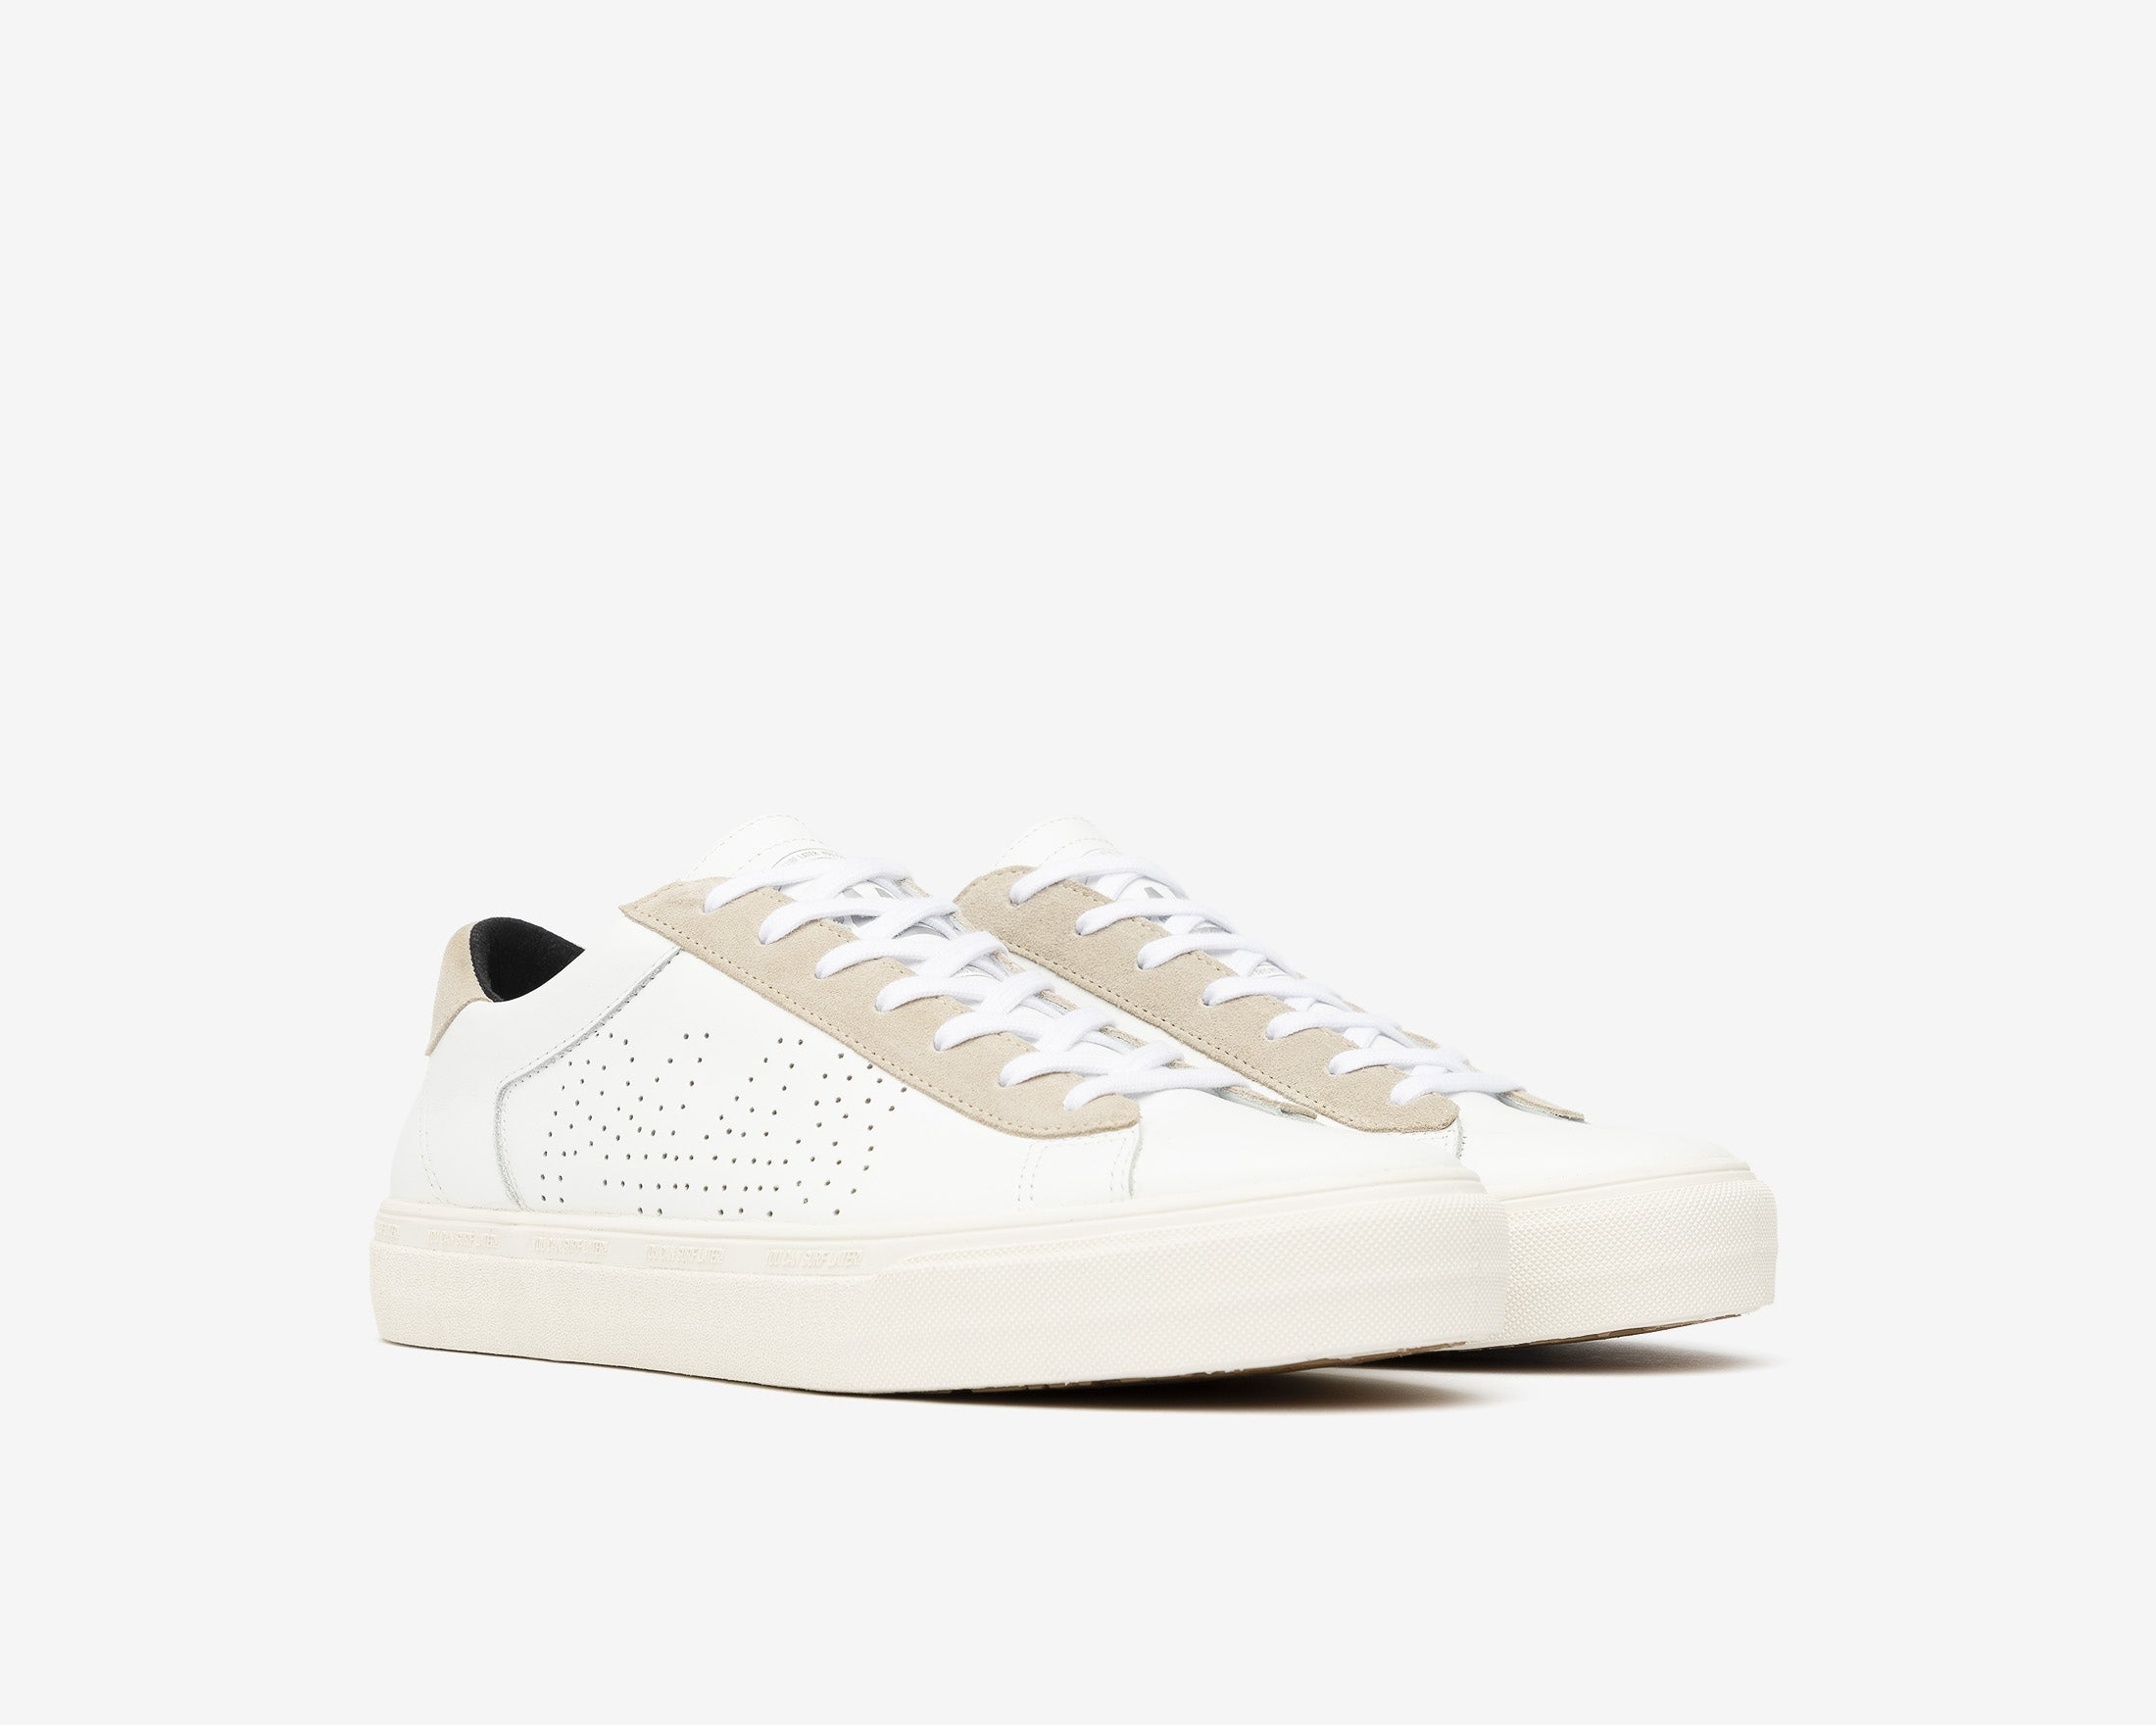 Y.C.S.L. Low-Top Volcanized Sneaker in White/Sand - Side